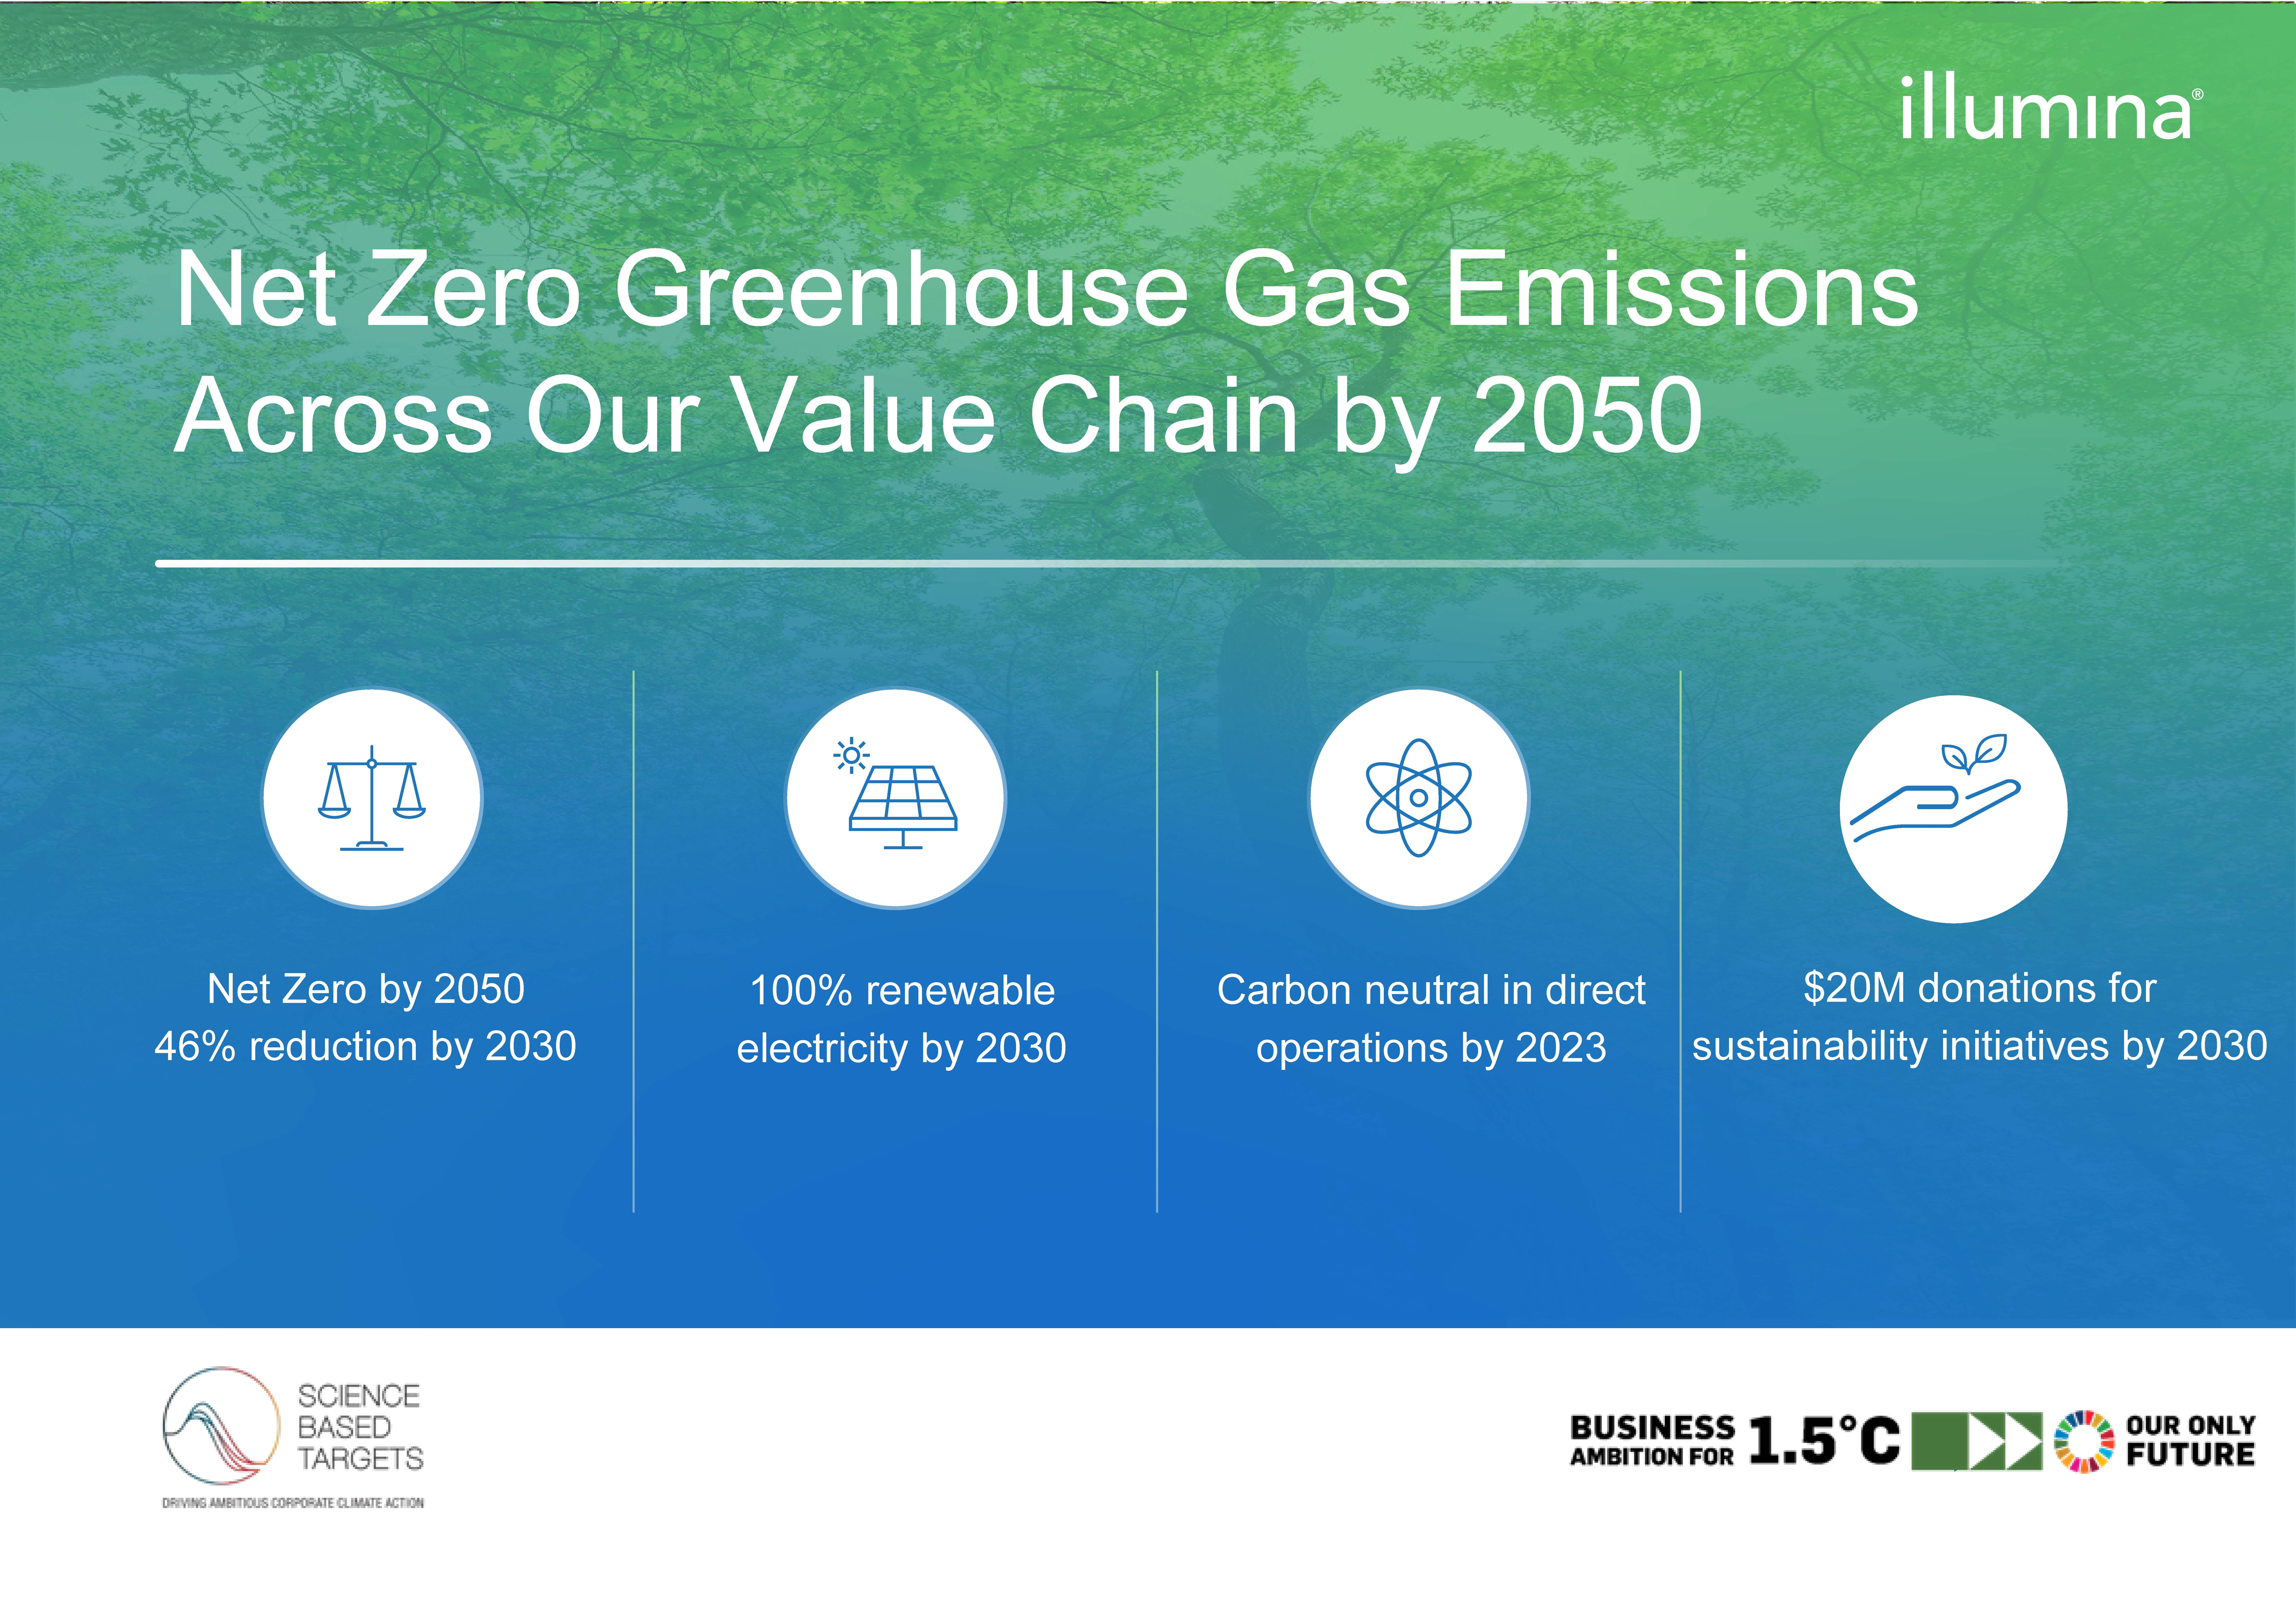 Illumina commits to ambitious climate action targets